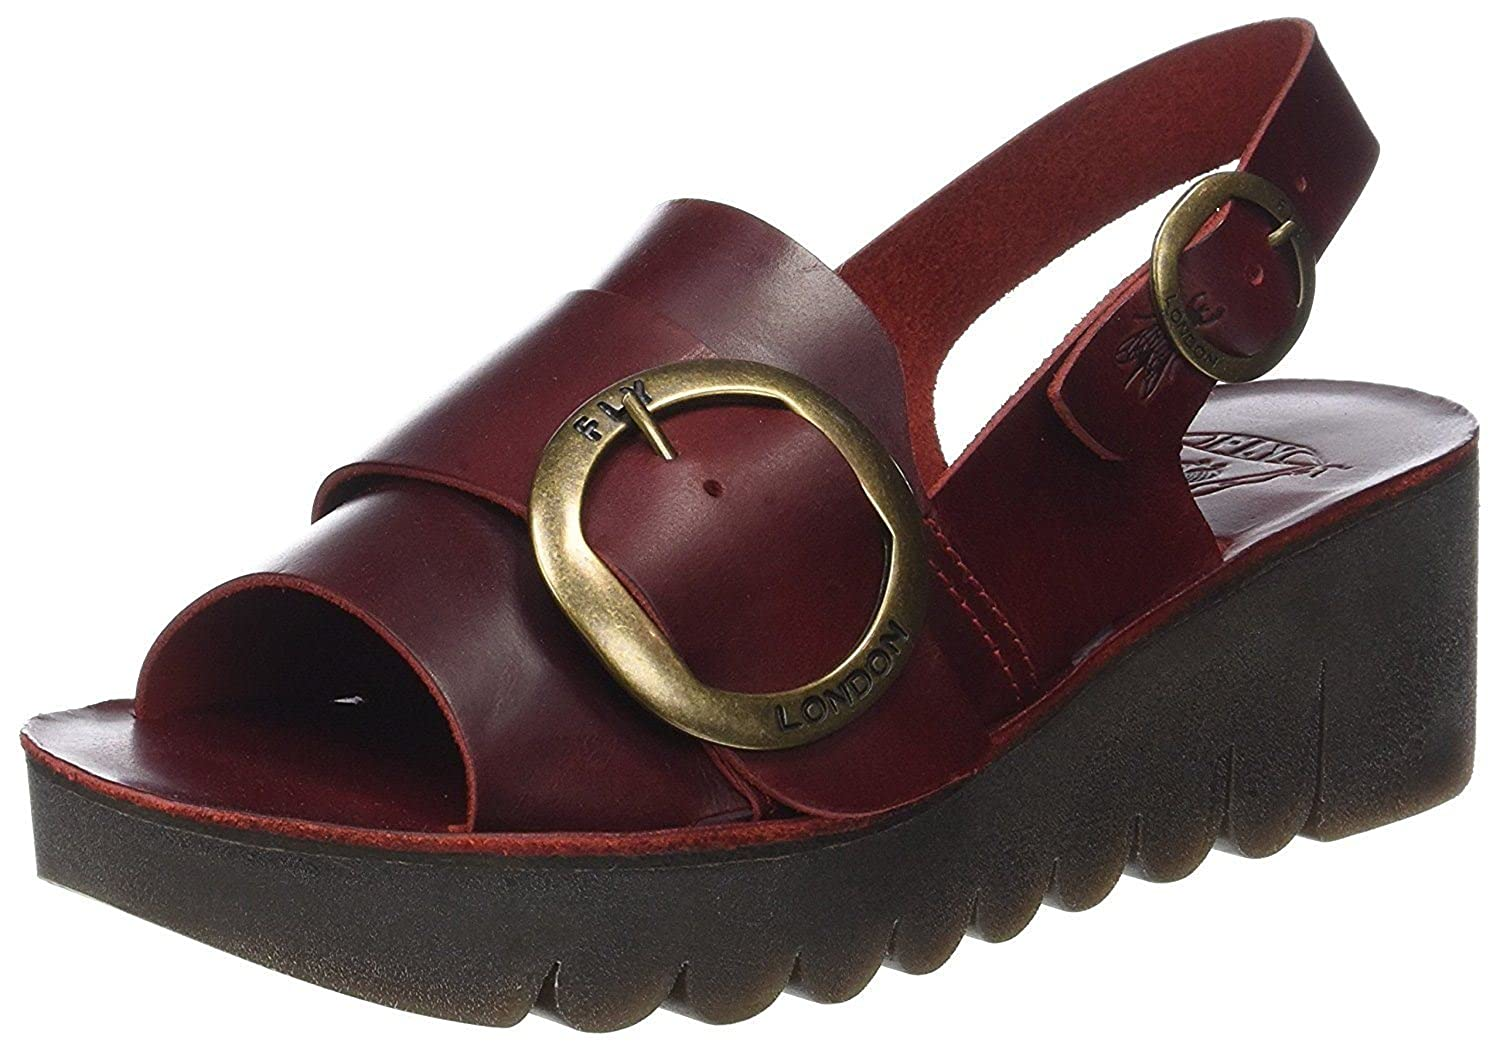 #Fly London Yidi190fly Red Leather Womens Wedge Sandals Shoes B07C641T1V 4 UK 37 EU 6 US